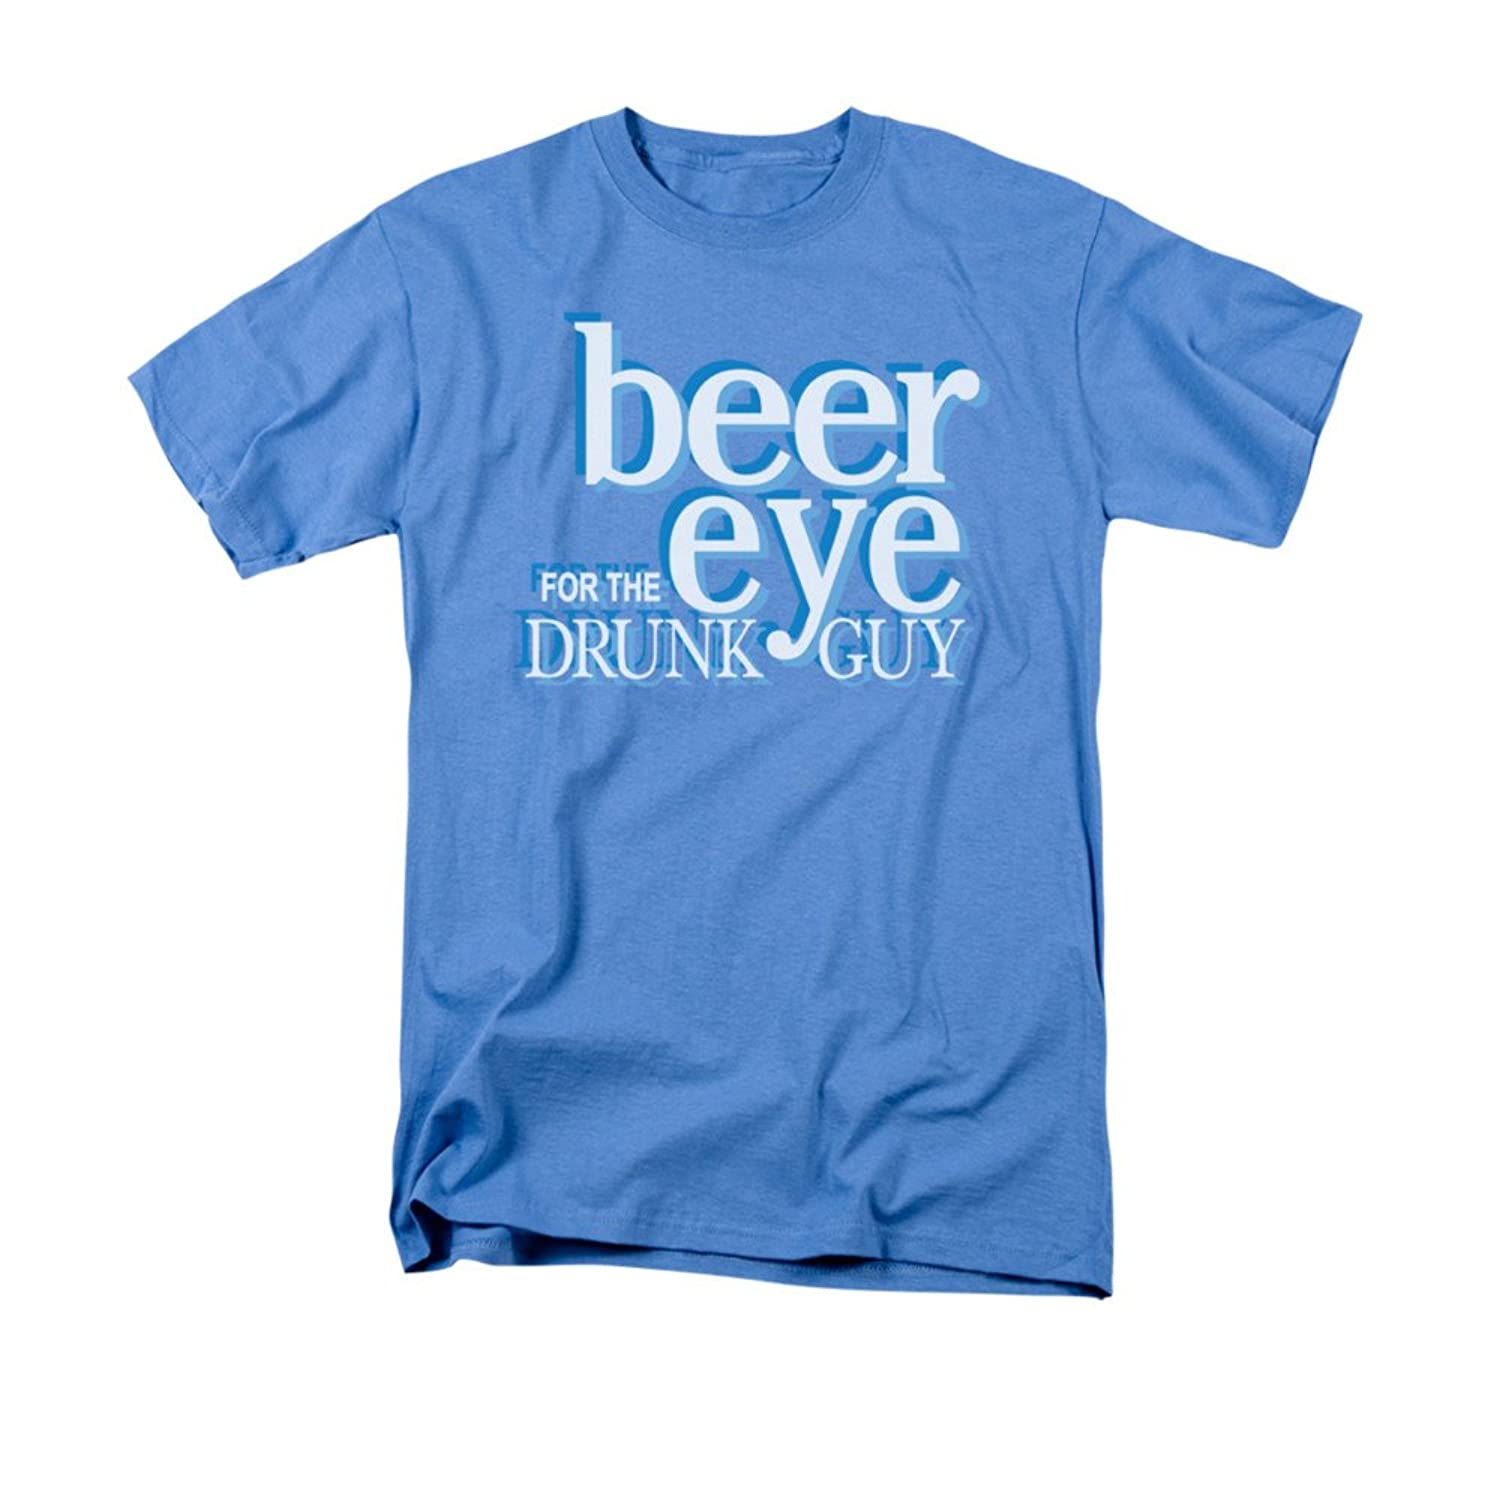 Beer Eye For The Drunk Guy Funny Saying Adult T-Shirt